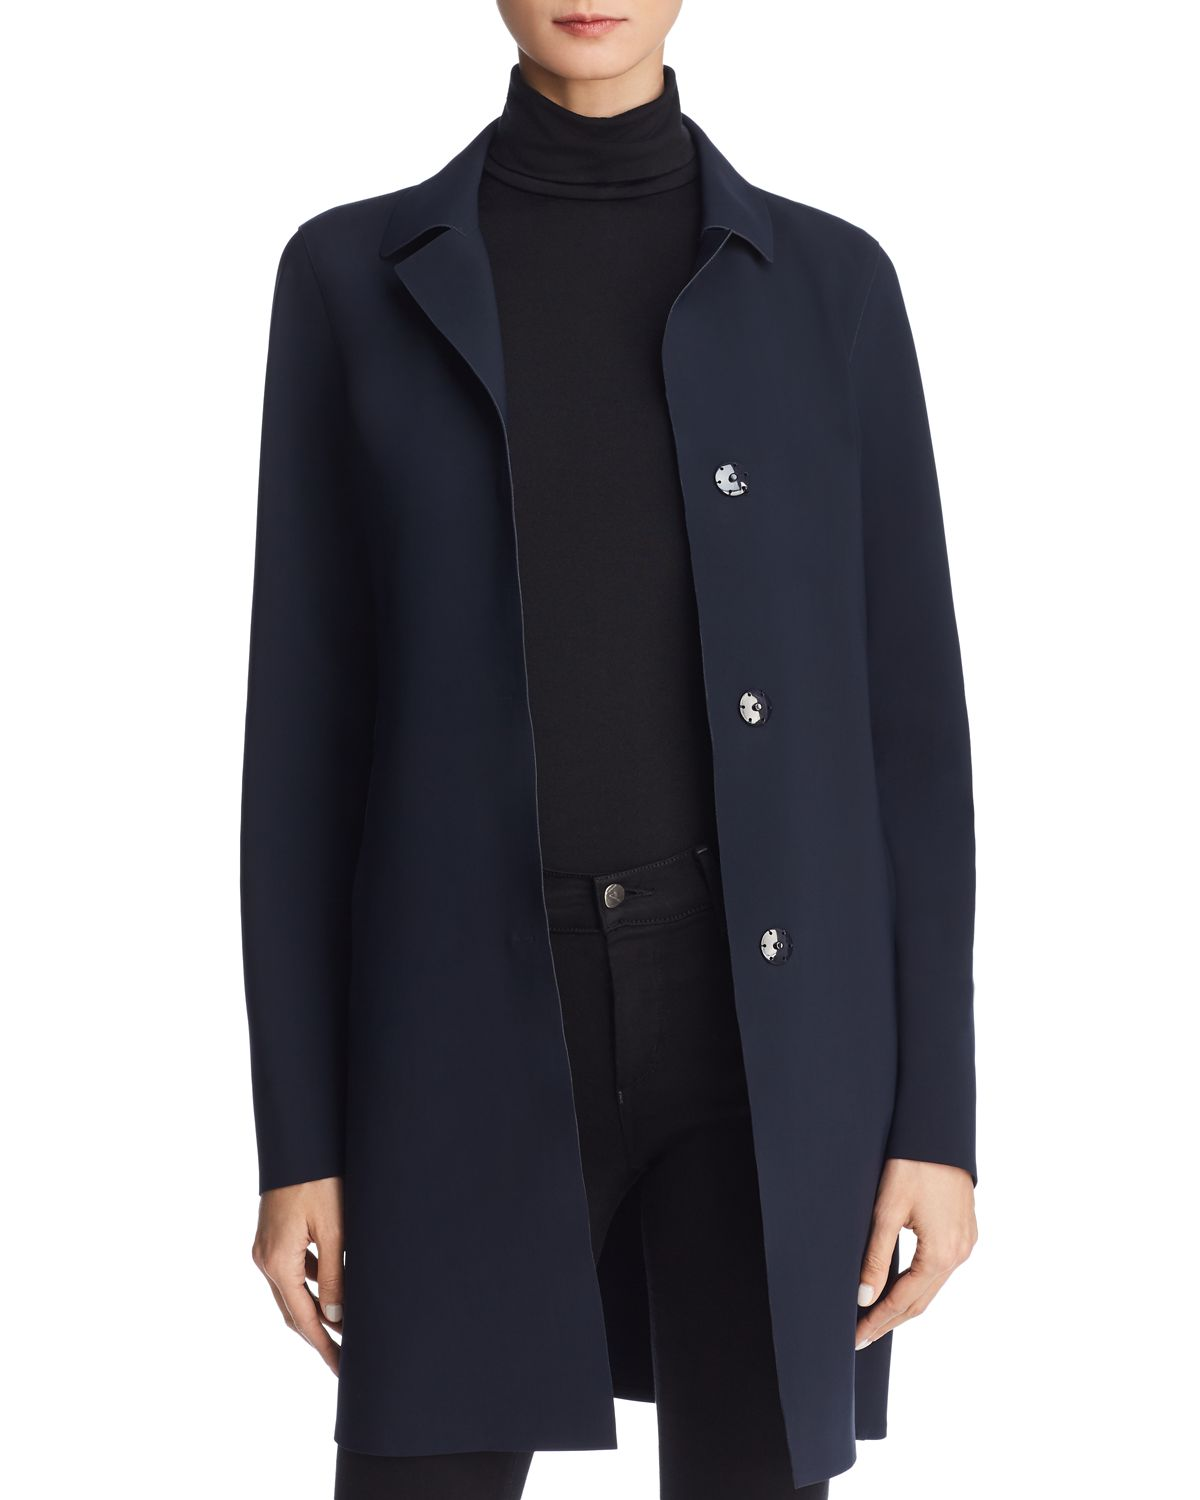 Scuba Coat by Herno